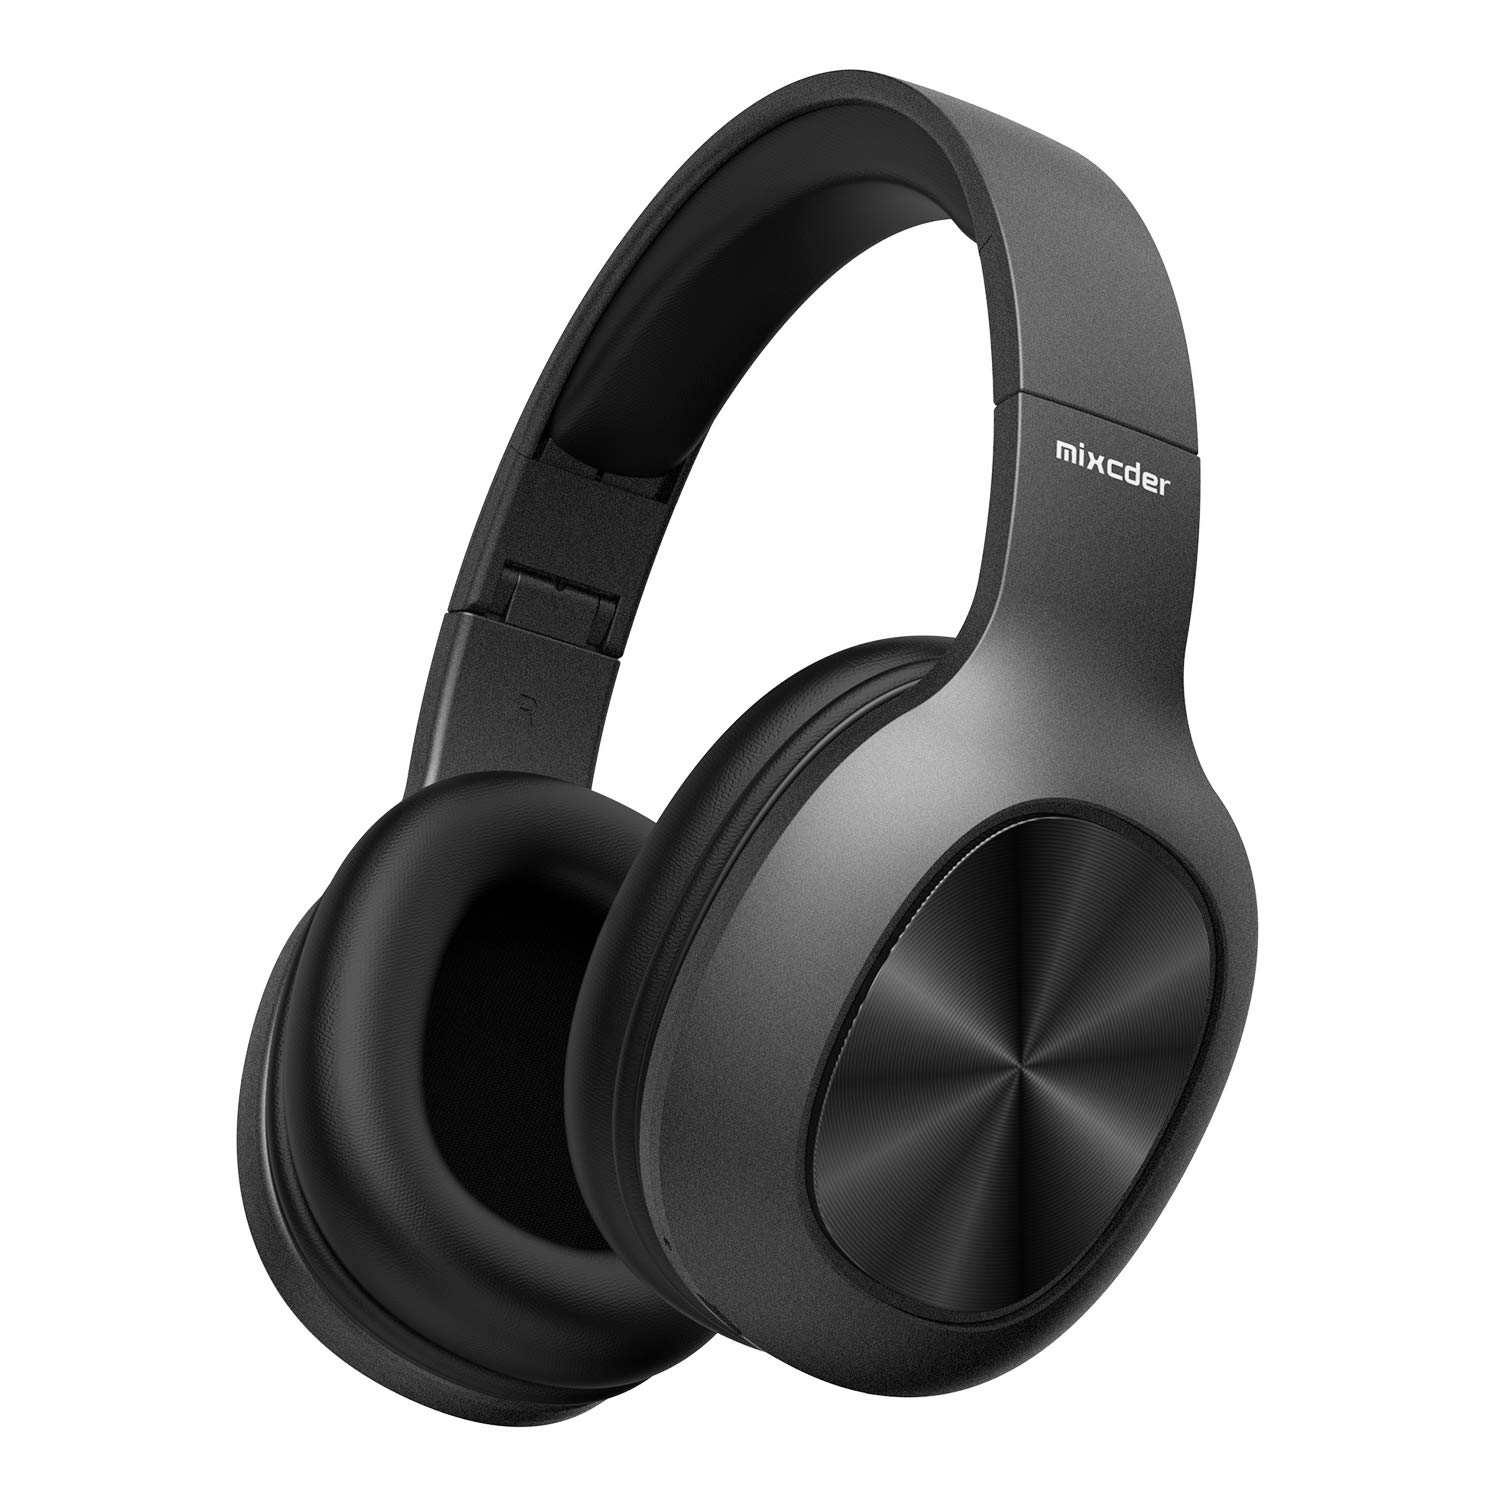 Mixcder HD901 Lightweight Wireless Headphones, Hi-Fi Stereo Bluetooth Headphones Over Ear with Microphone, Foldable Wireless Headset with TF SD Card Wired Mod, Soft Protein Earmuffs for TV PC Travel